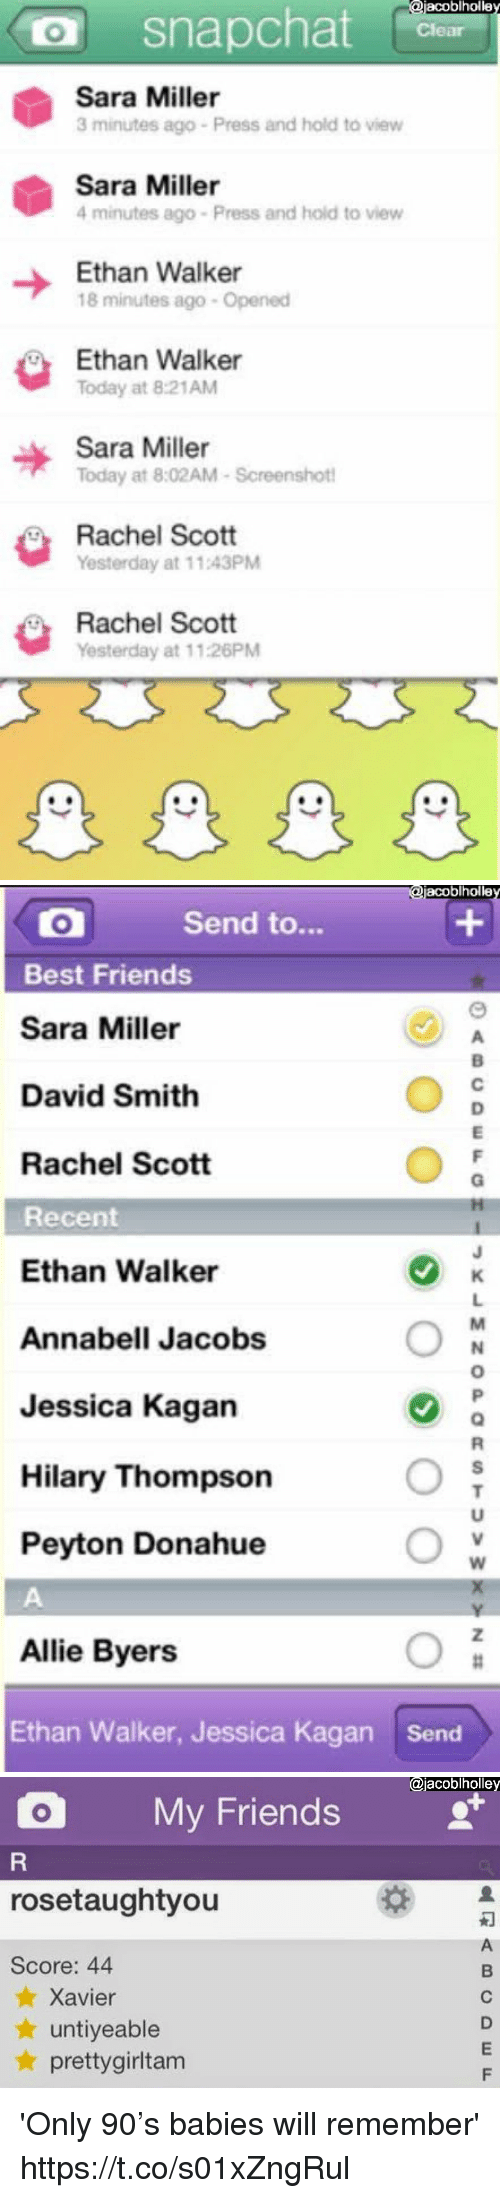 Hilary: acoblholle  O snapchat  Sara Miller  3 minutes ago Press and hold to view  Sara Miller  4 minutes ago Press and hold to view  Ethan Walker  18 minutes ago- Opened  Ethan Walke  Today at 8:21AM  Sara Miller  Today at 8:02AM-Screenshot  Rachel Scott  Yesterday at 11.43PM  Rachel Scott  Yesterday at 11:26PM   acoblholle  Send to...  Best Friends  Sara Miller  David Smith  Rachel Scott  Recent  Ethan Walker  Annabell Jacobs  Jessica Kagan  Hilary Thompson  Peyton Donahue  Allie Byers  Ethan Walker, Jessica Kagan  Send   @jacoblholle  O My Friends  rosetaughtyou  Score: 44  ★ Xavier  ★ untiyeable  ★ prettygirltam 'Only 90's babies will remember' https://t.co/s01xZngRul